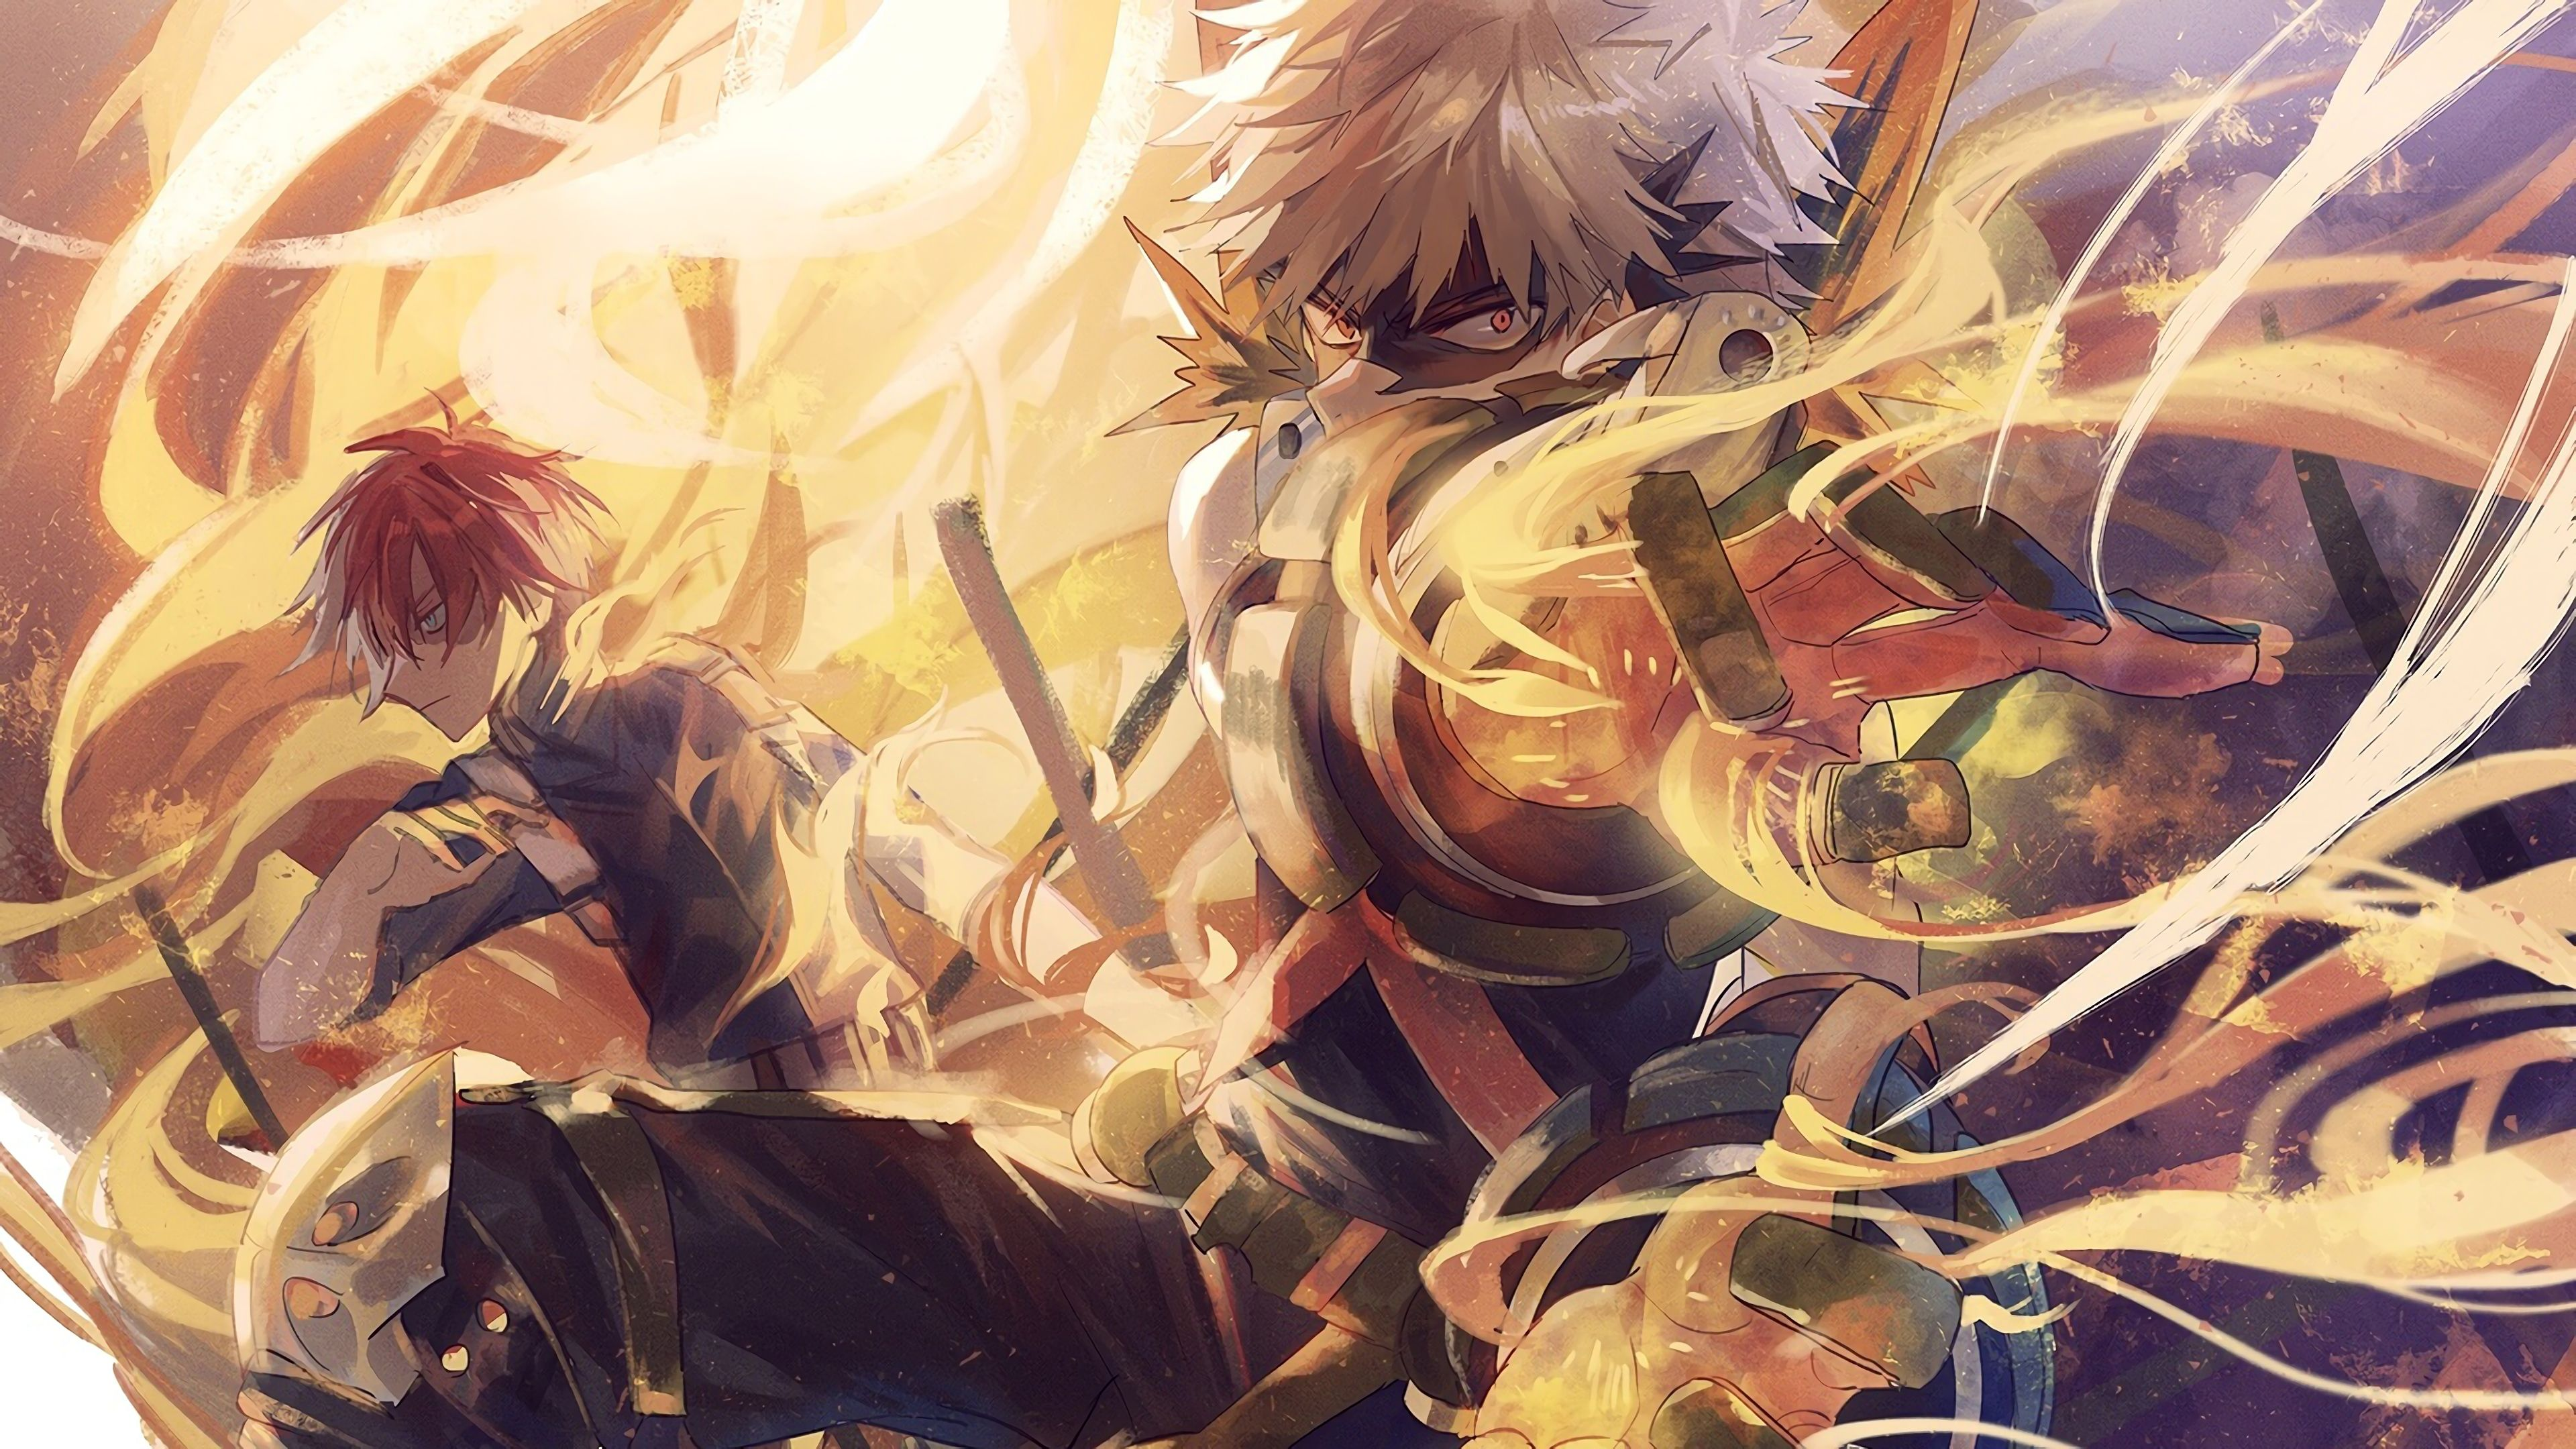 See the handpicked my hero academia wallpaper deku images and share with your frends and social sites. 200 or more My Hero Academia Bakugou Wallpaper ~ Ameliakirk